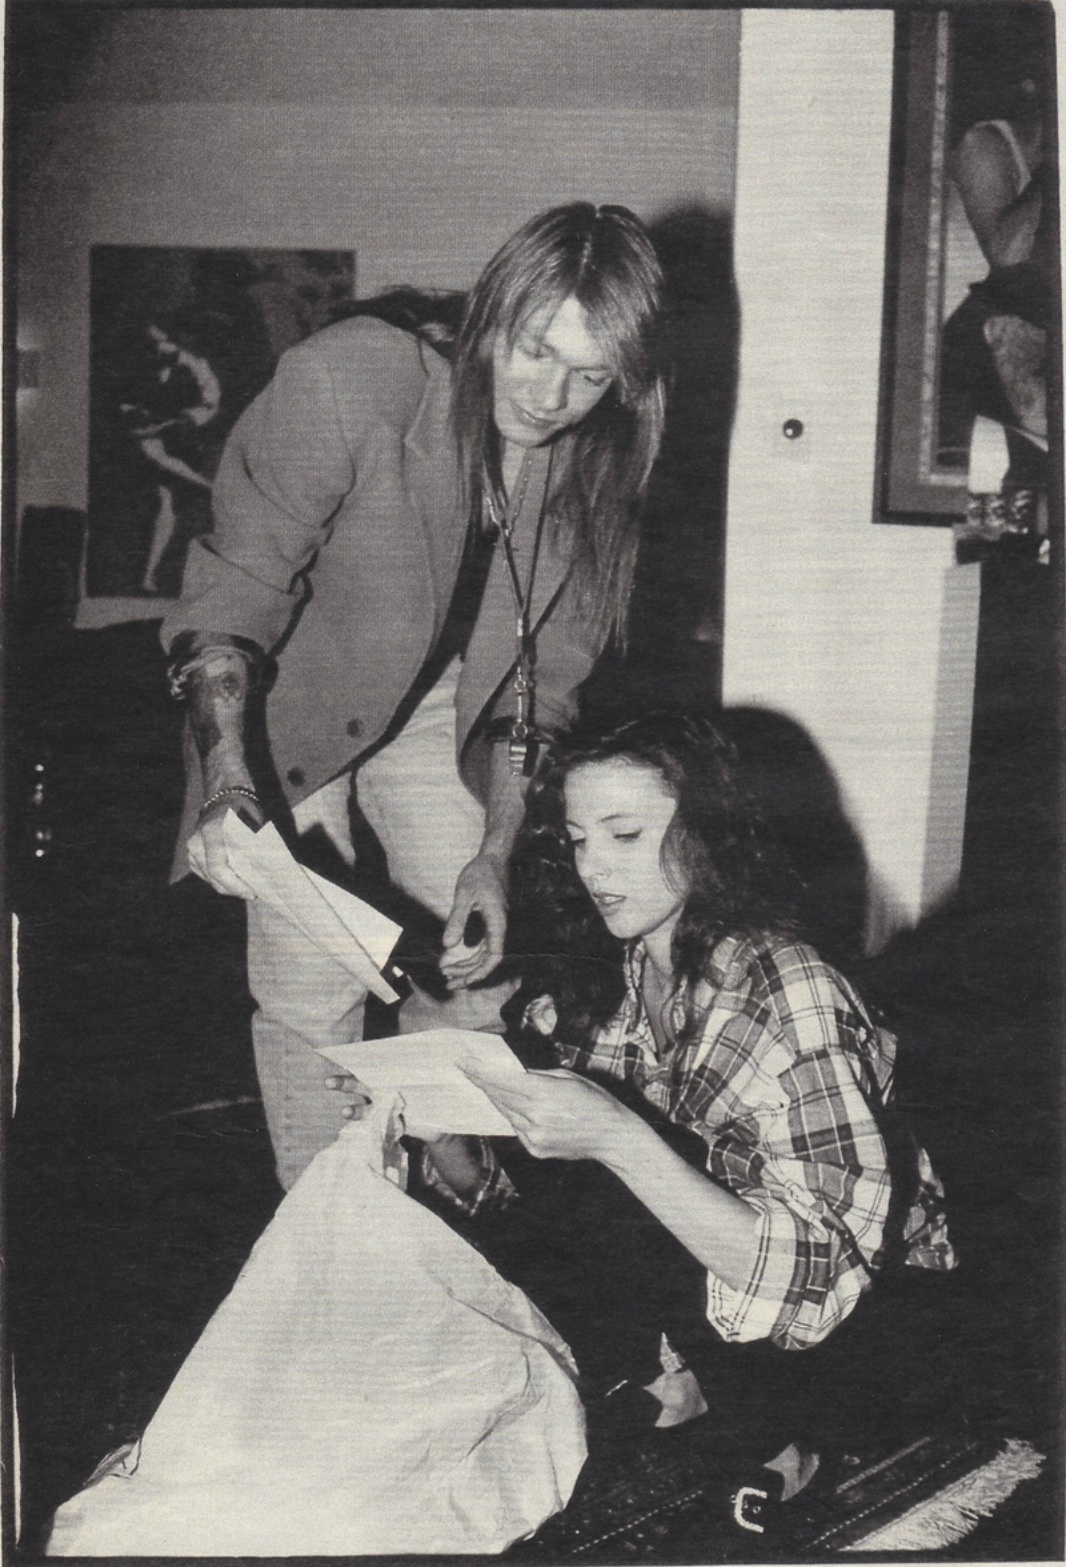 Axl Rose and Erin Everly (Sweet Child o' mine)